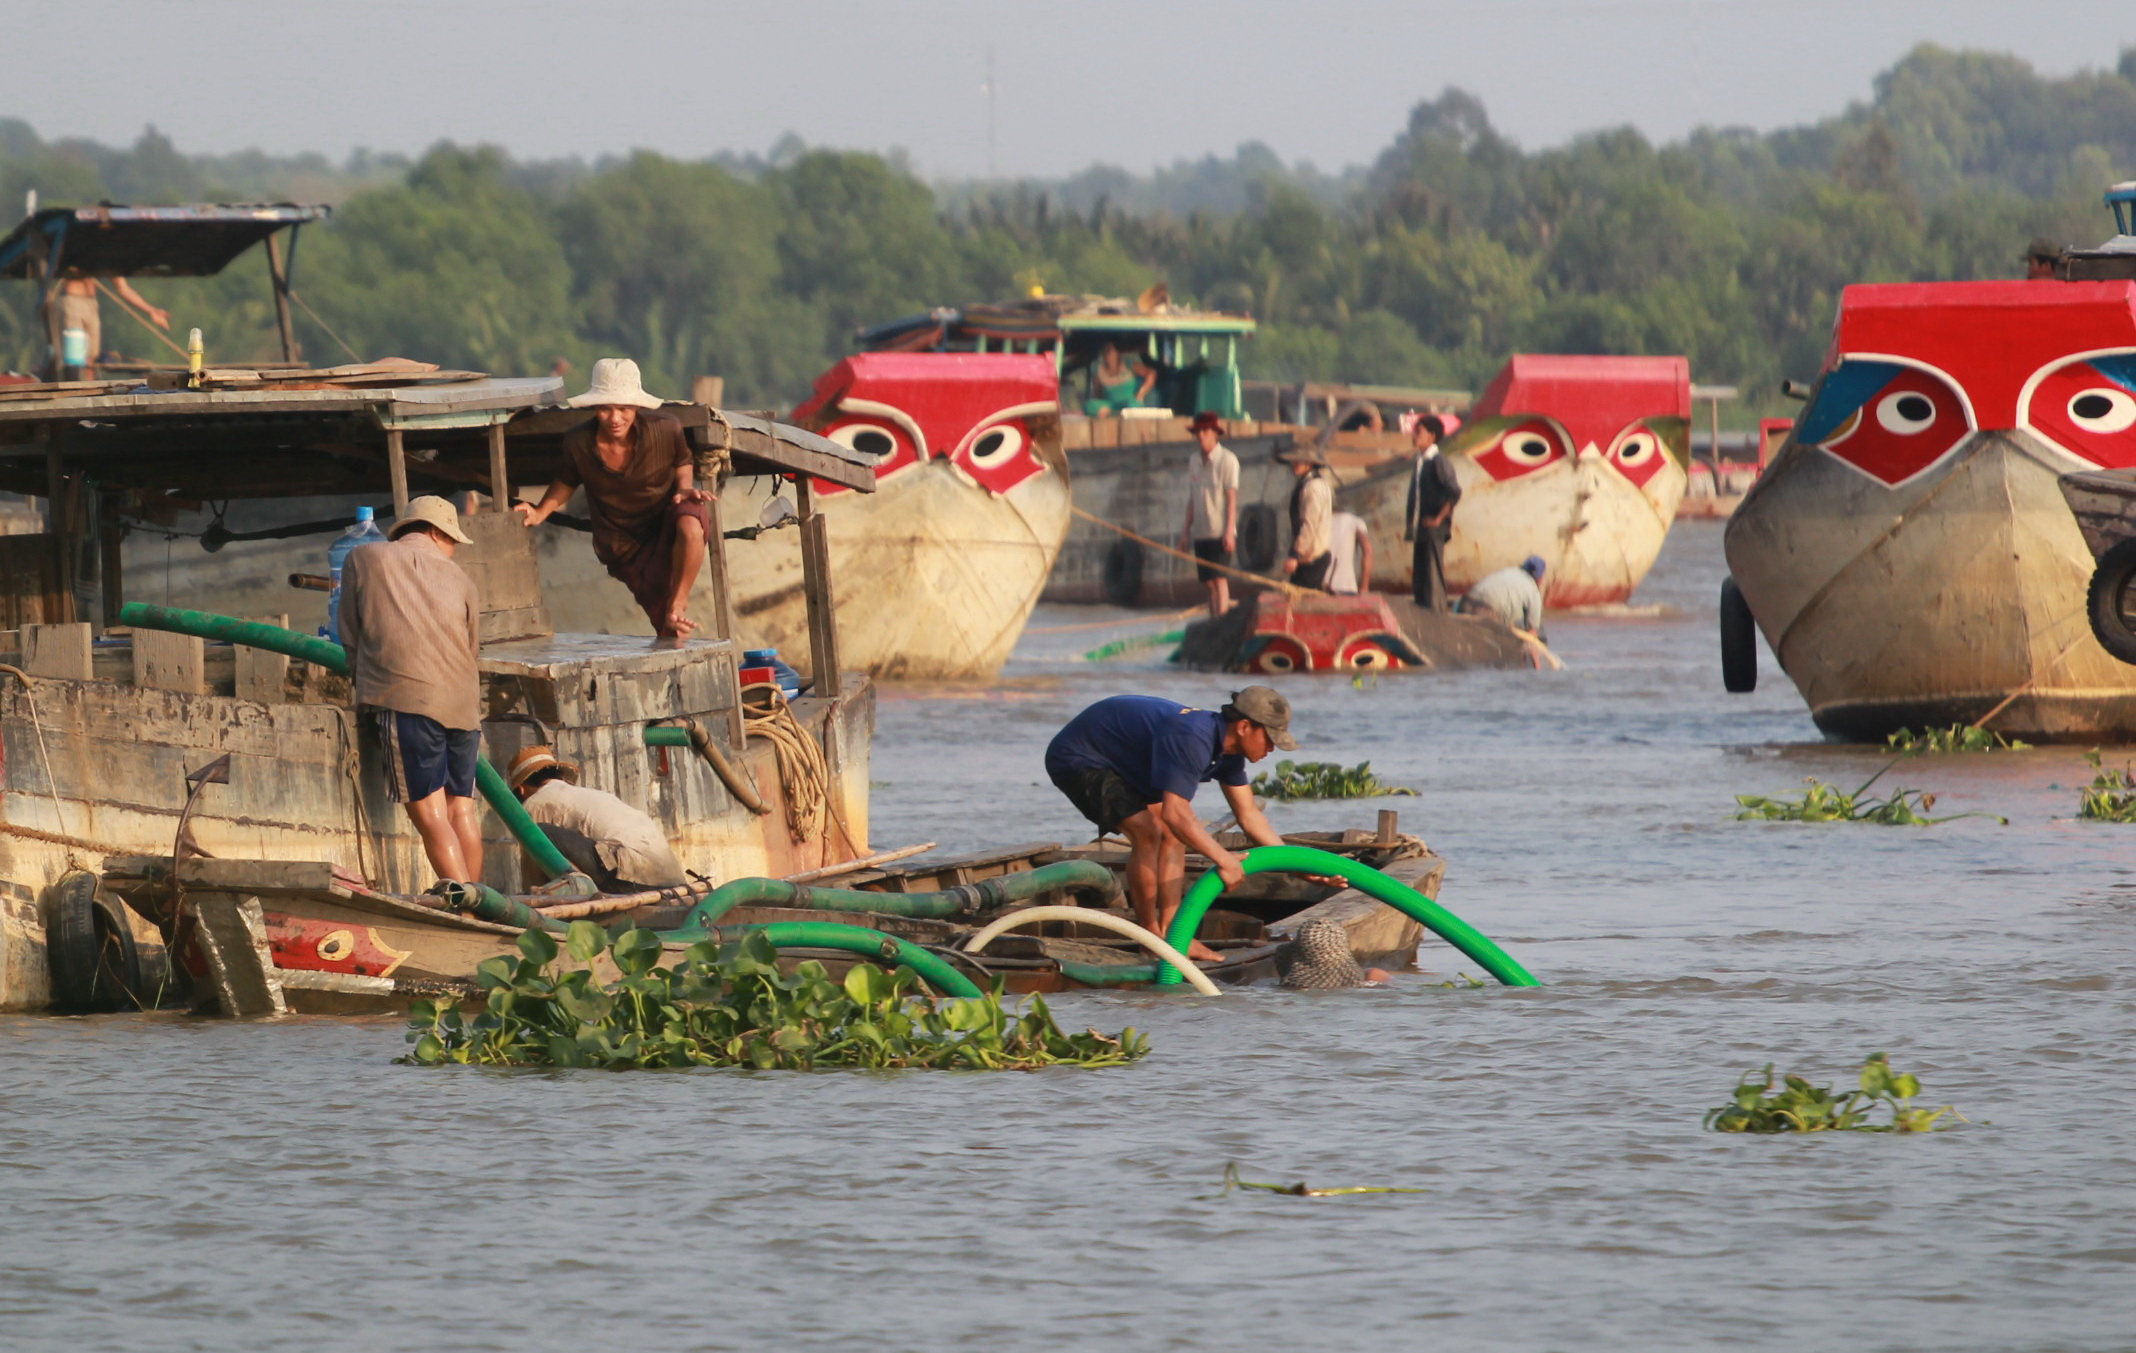 Law-defying sand exploitation and transactions take place blatantly at a section of Dong Nai River which goes through District 9's Long Phuoc Ward.